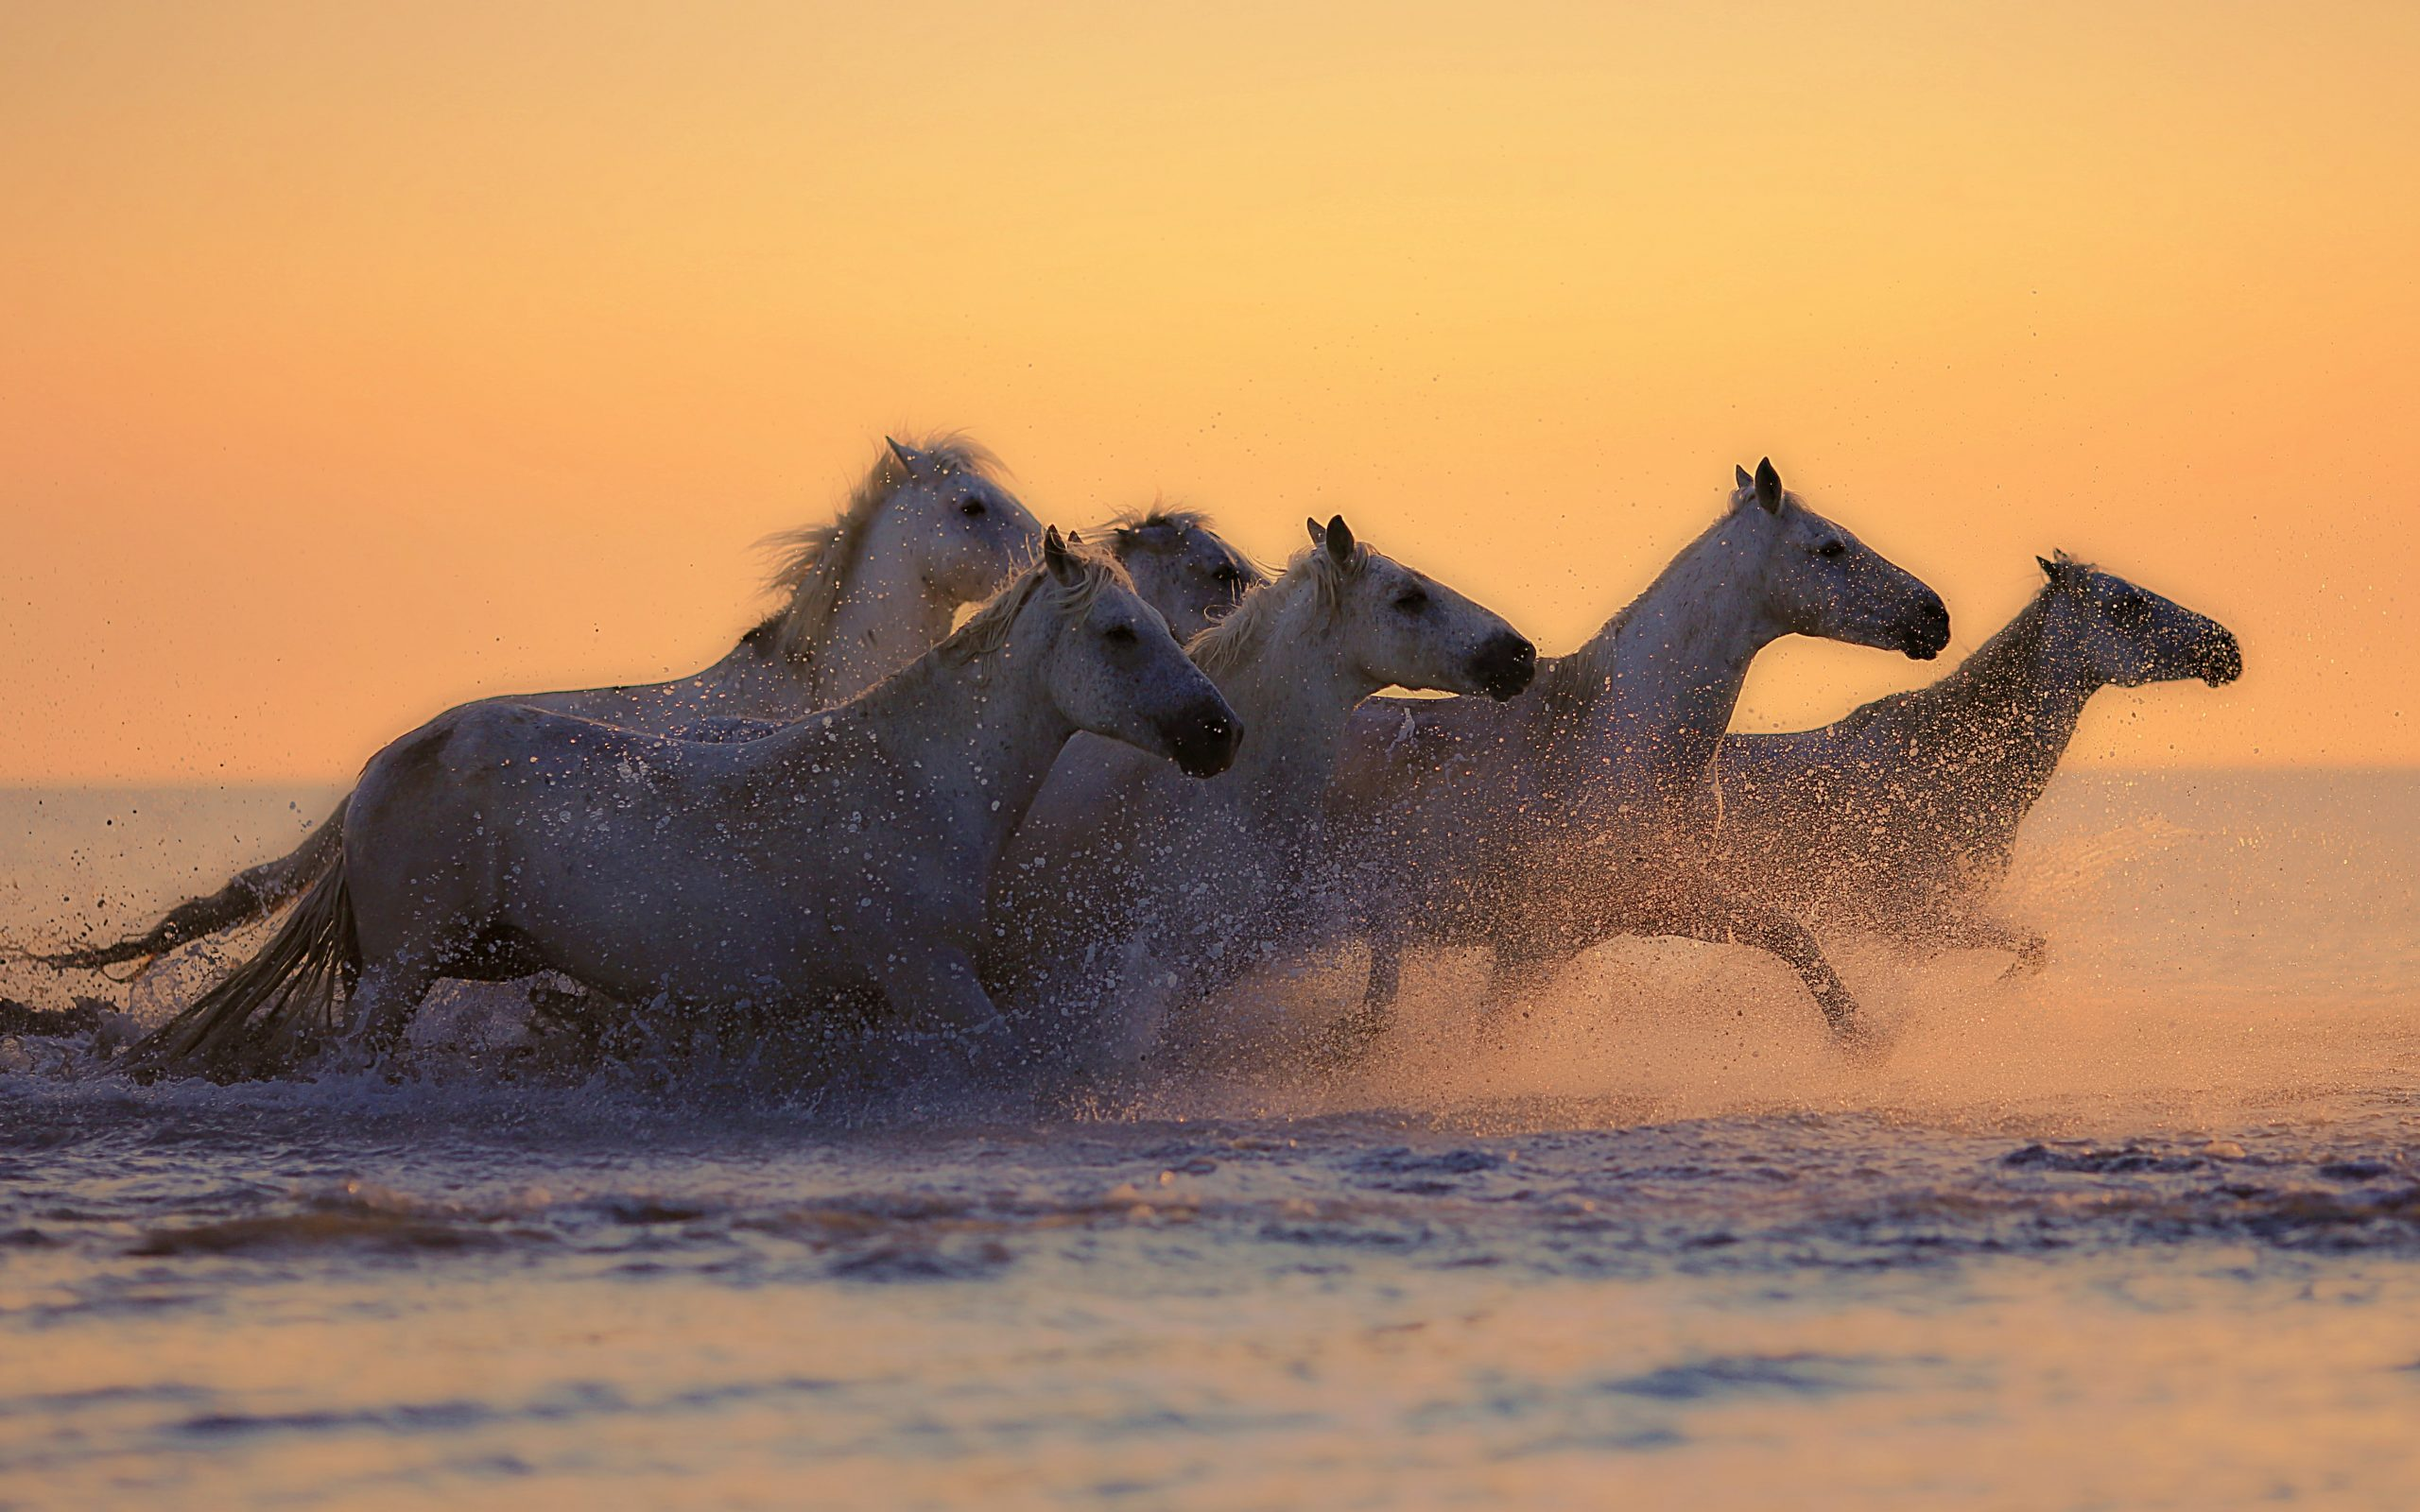 Motivational Wallpapers Hd White Horses Galloping At Sunset 4k Uhd Wallpaper